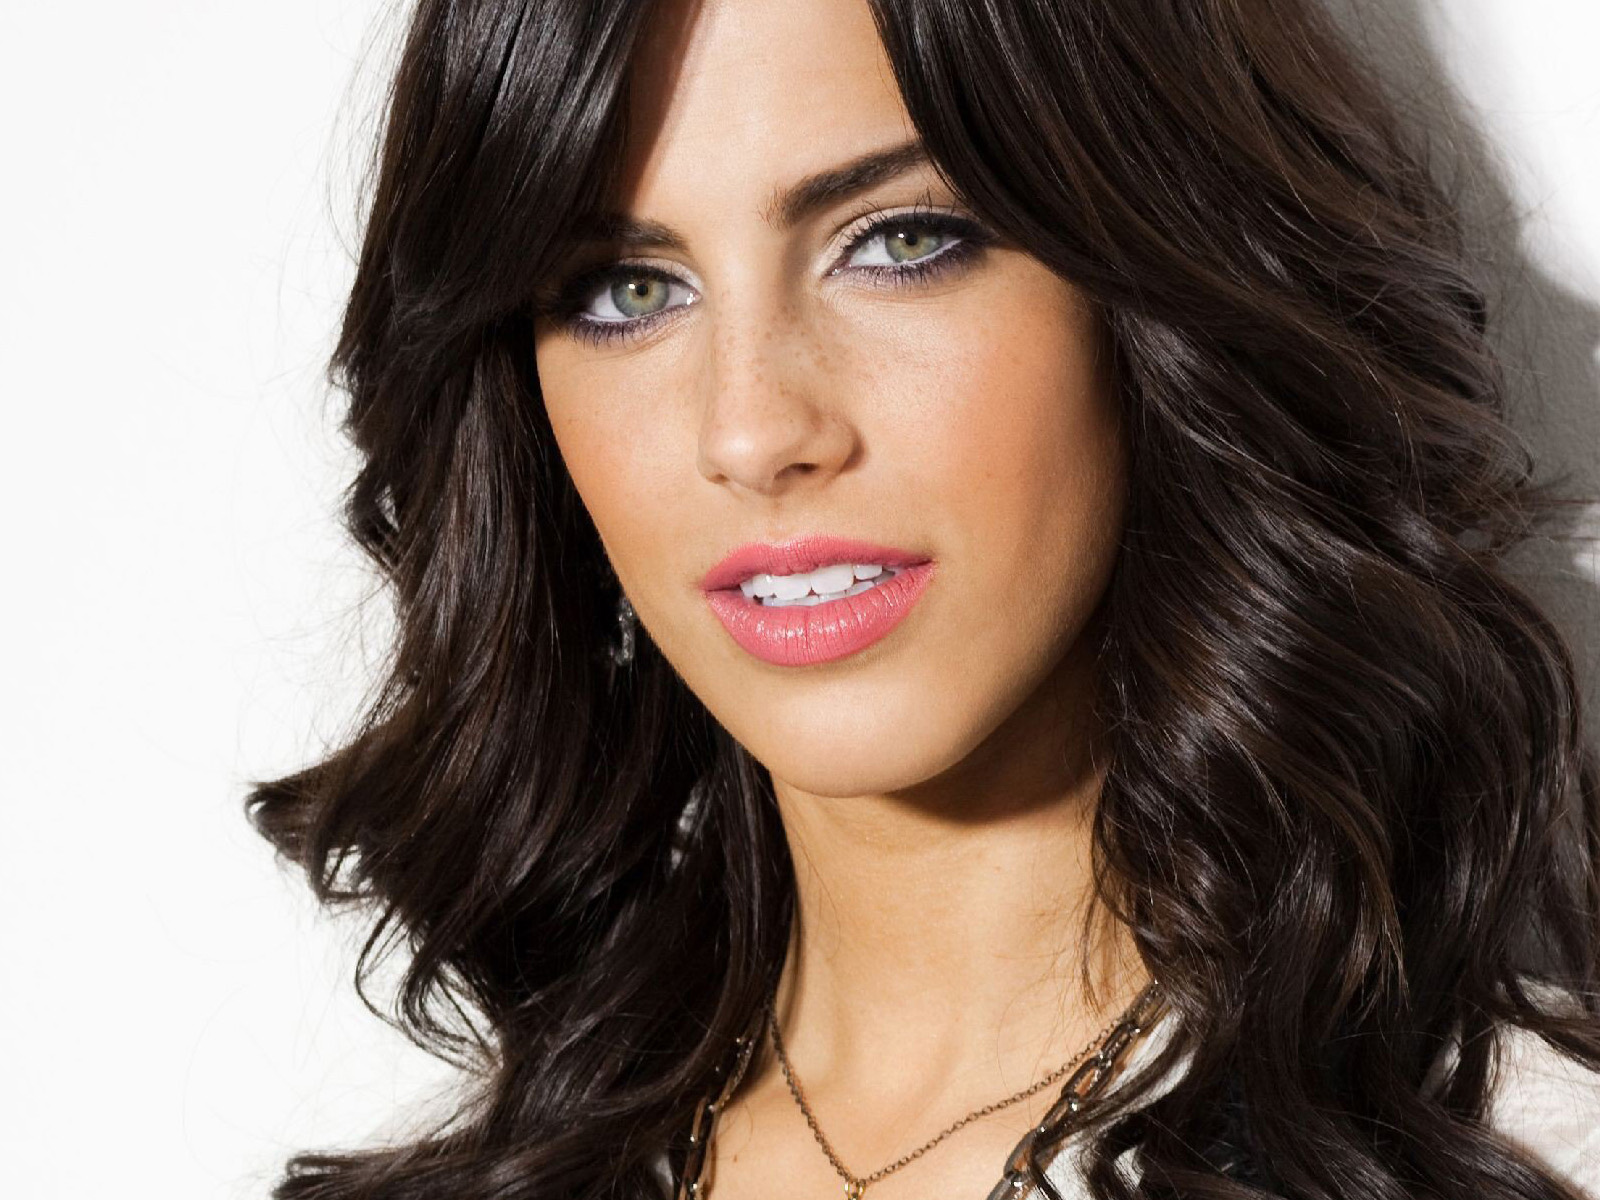 1600x1200 - Jessica Lowndes Wallpapers 18